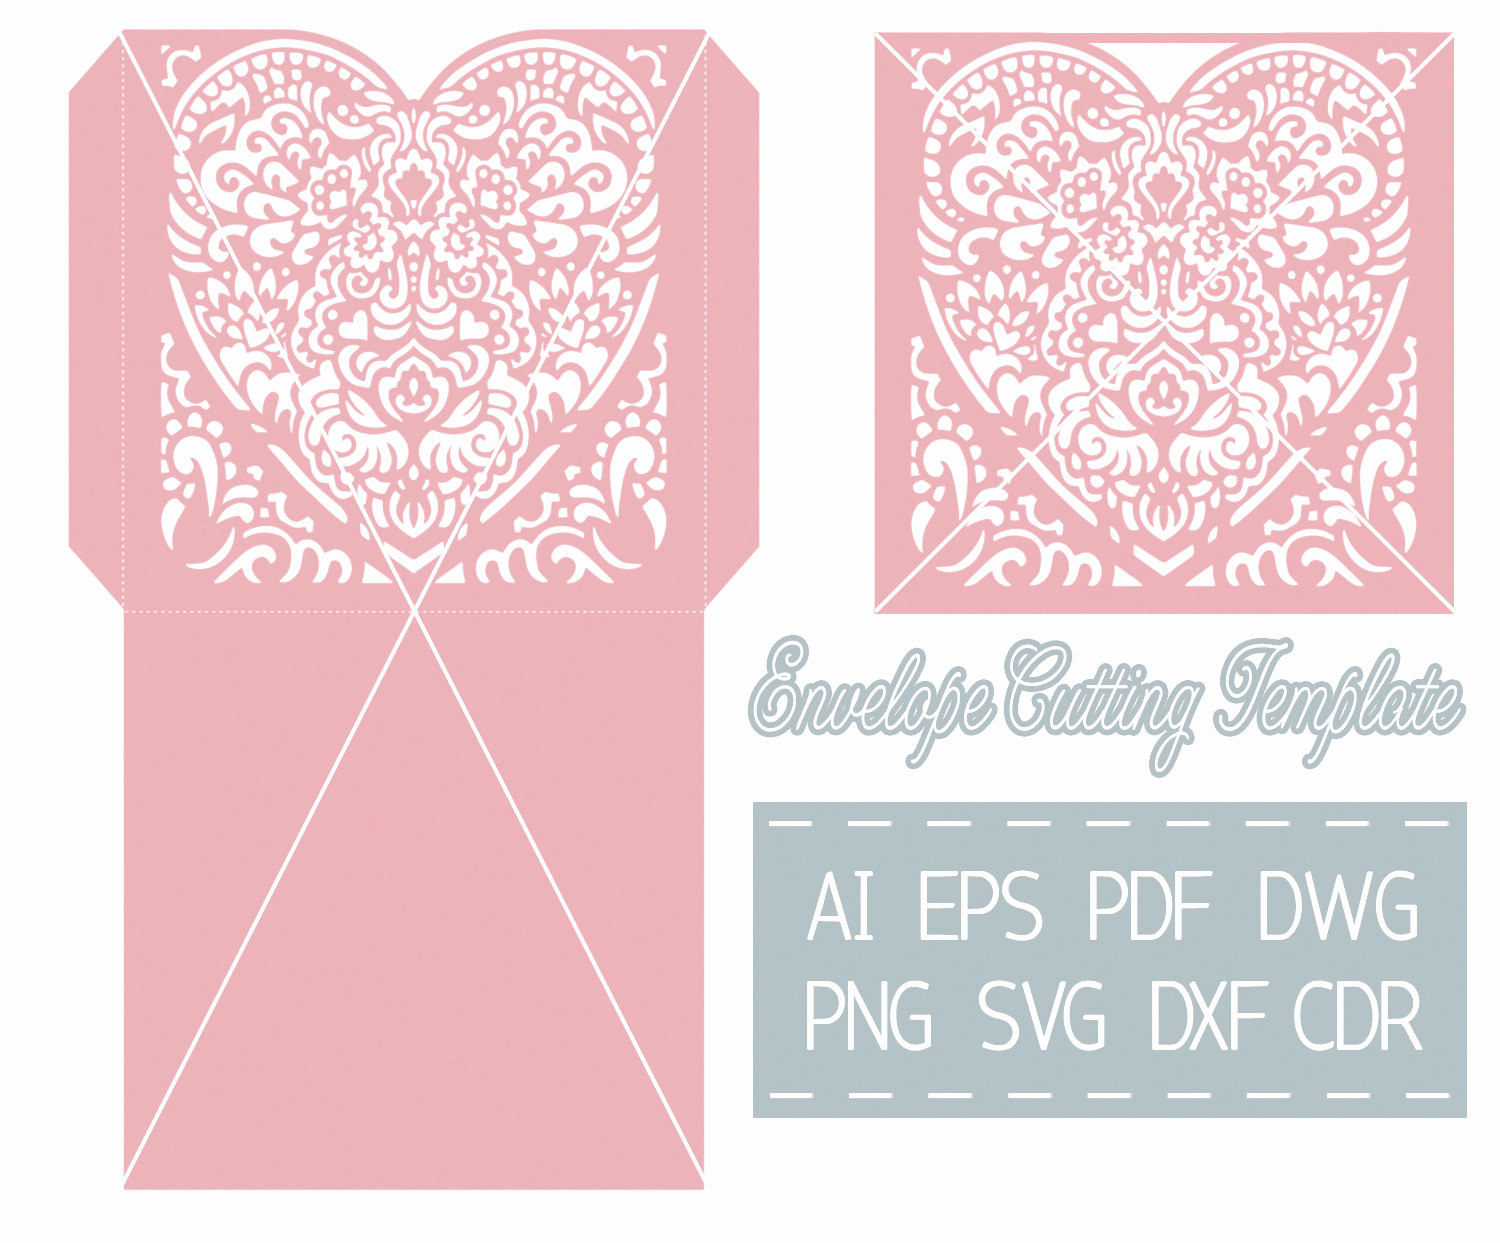 Wedding Invitation Svg Files Unique Wedding Invitation Envelope Template Cutting File Svg Cdr